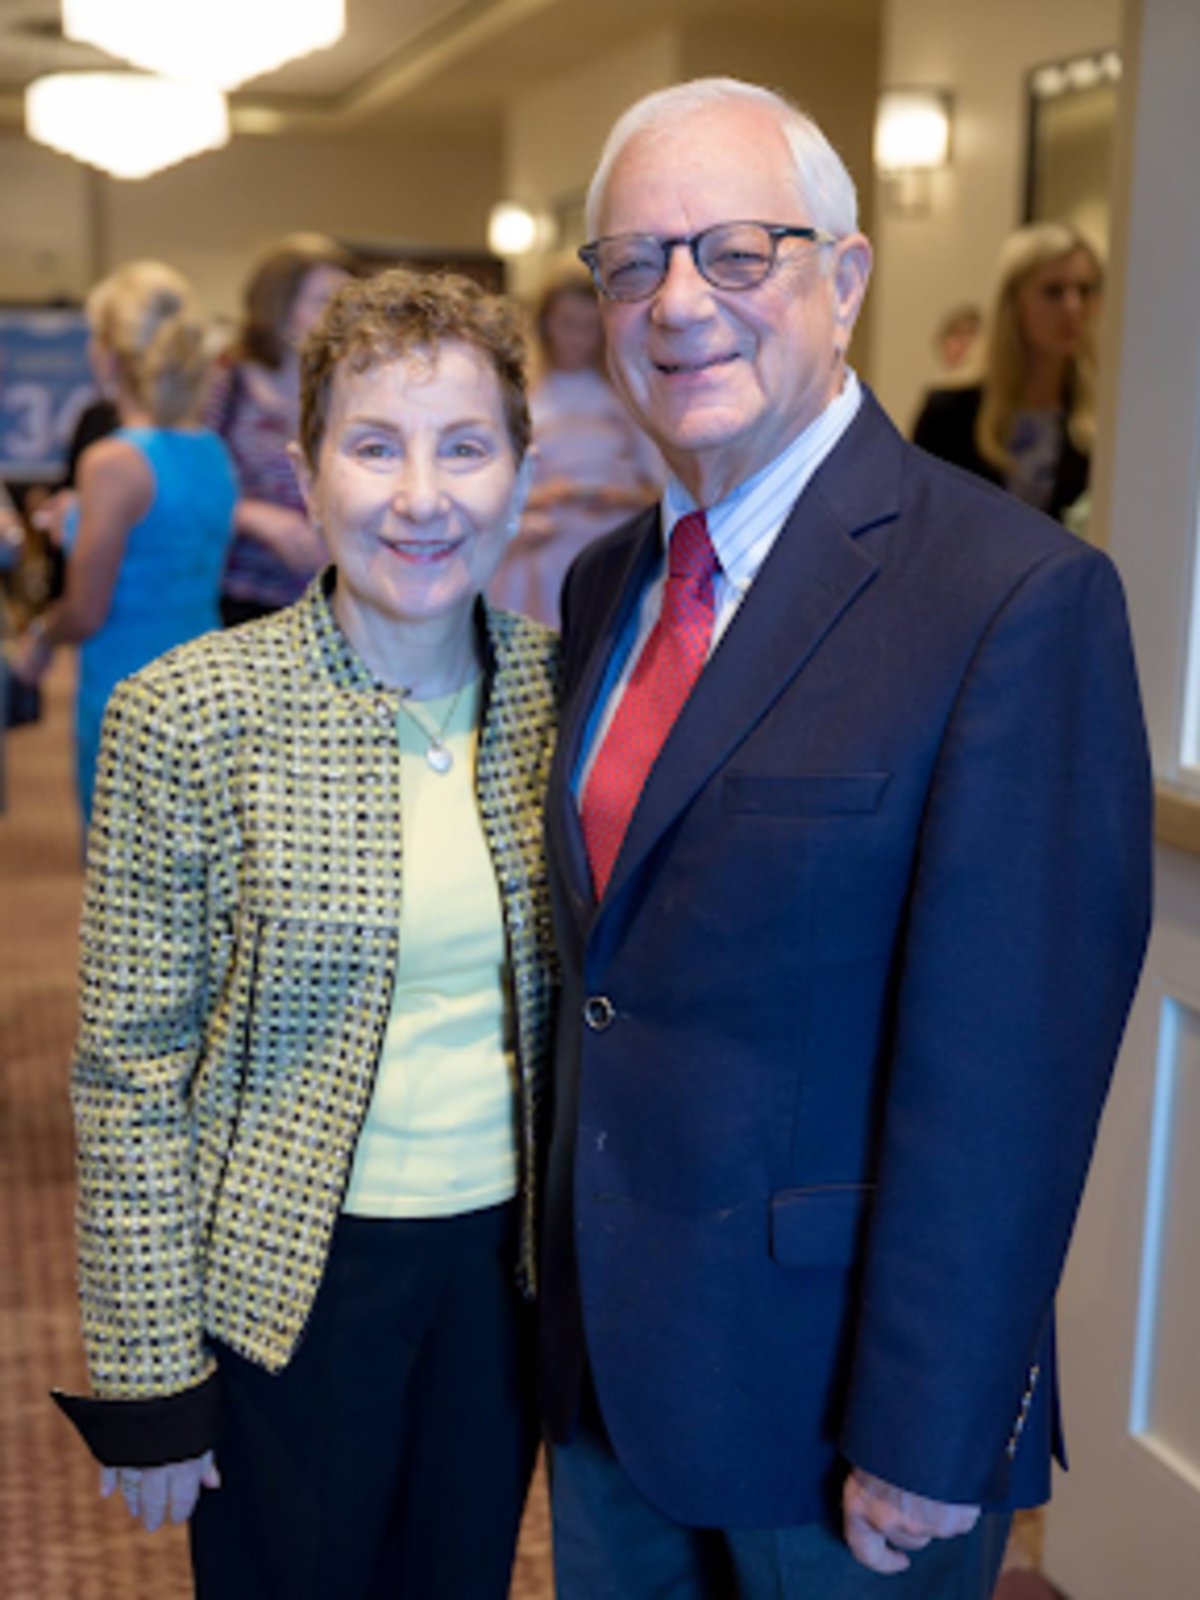 The Center luncheon Mitzi Shure and former CEO of The Center, Jerry Wische